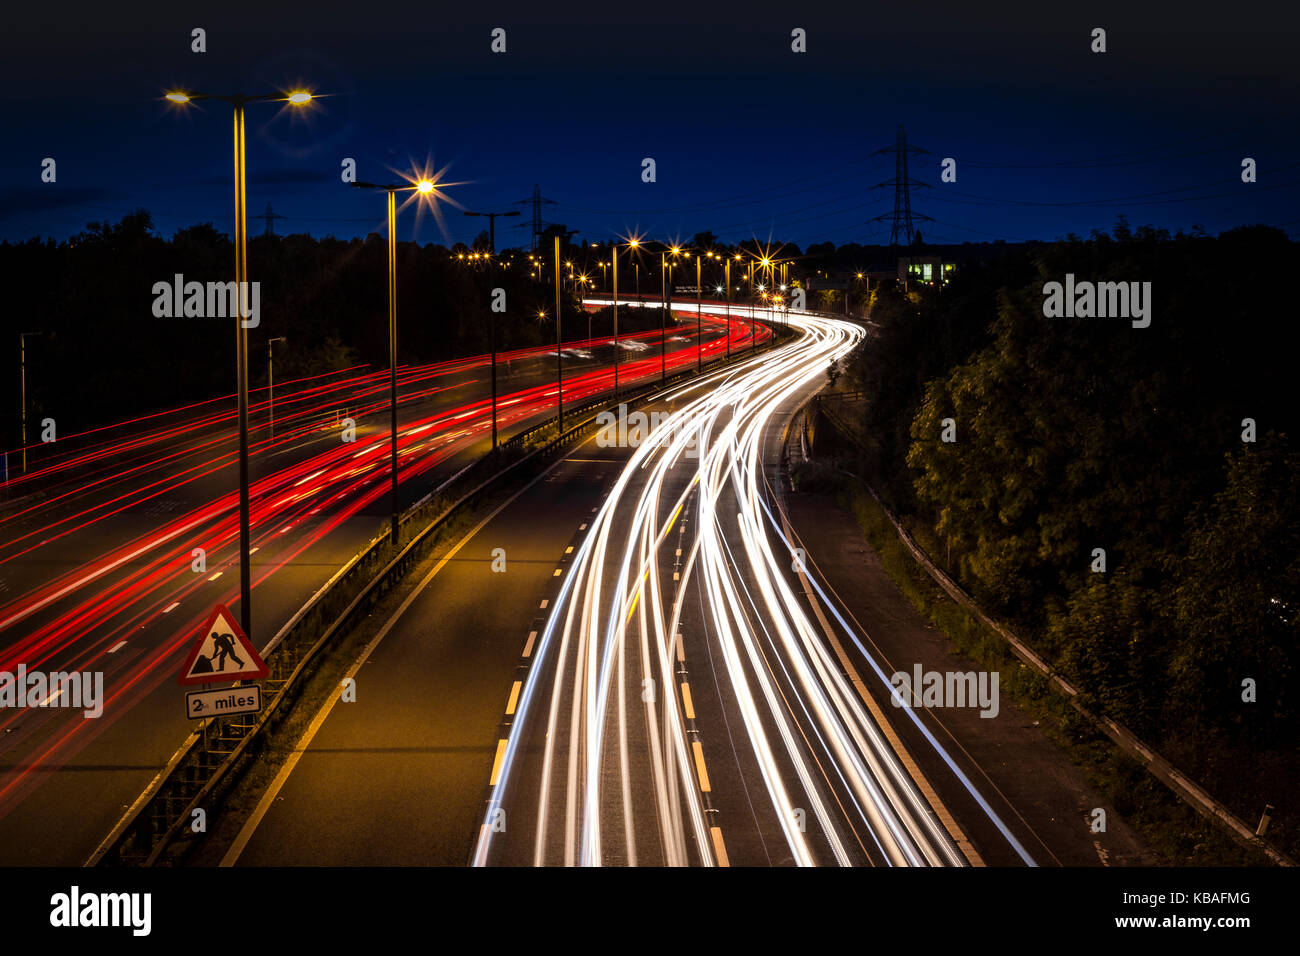 Taken late evening over motorway bridge. Motion blur of headlights and taillights - Stock Image